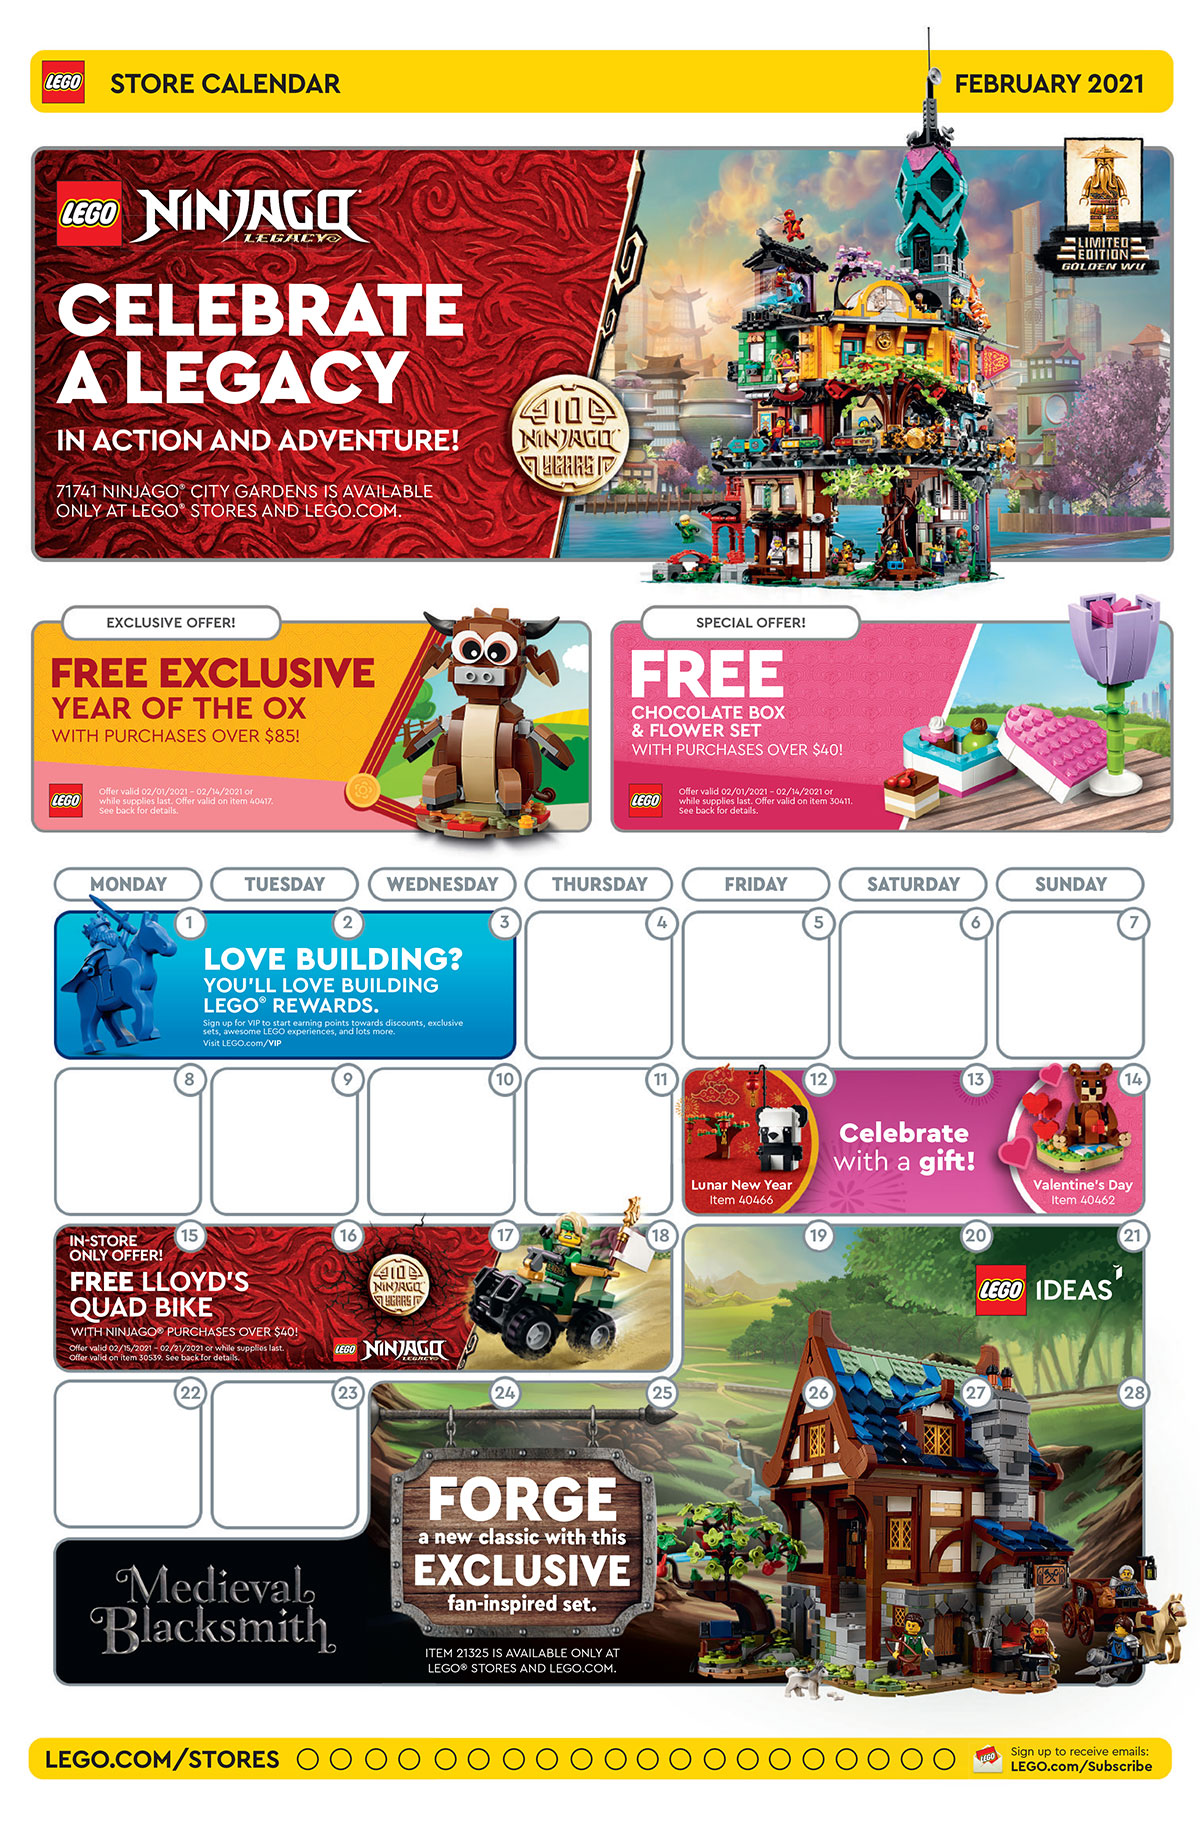 Brickfinder   LEGO Brand Store Calendar February 2021 Promotions